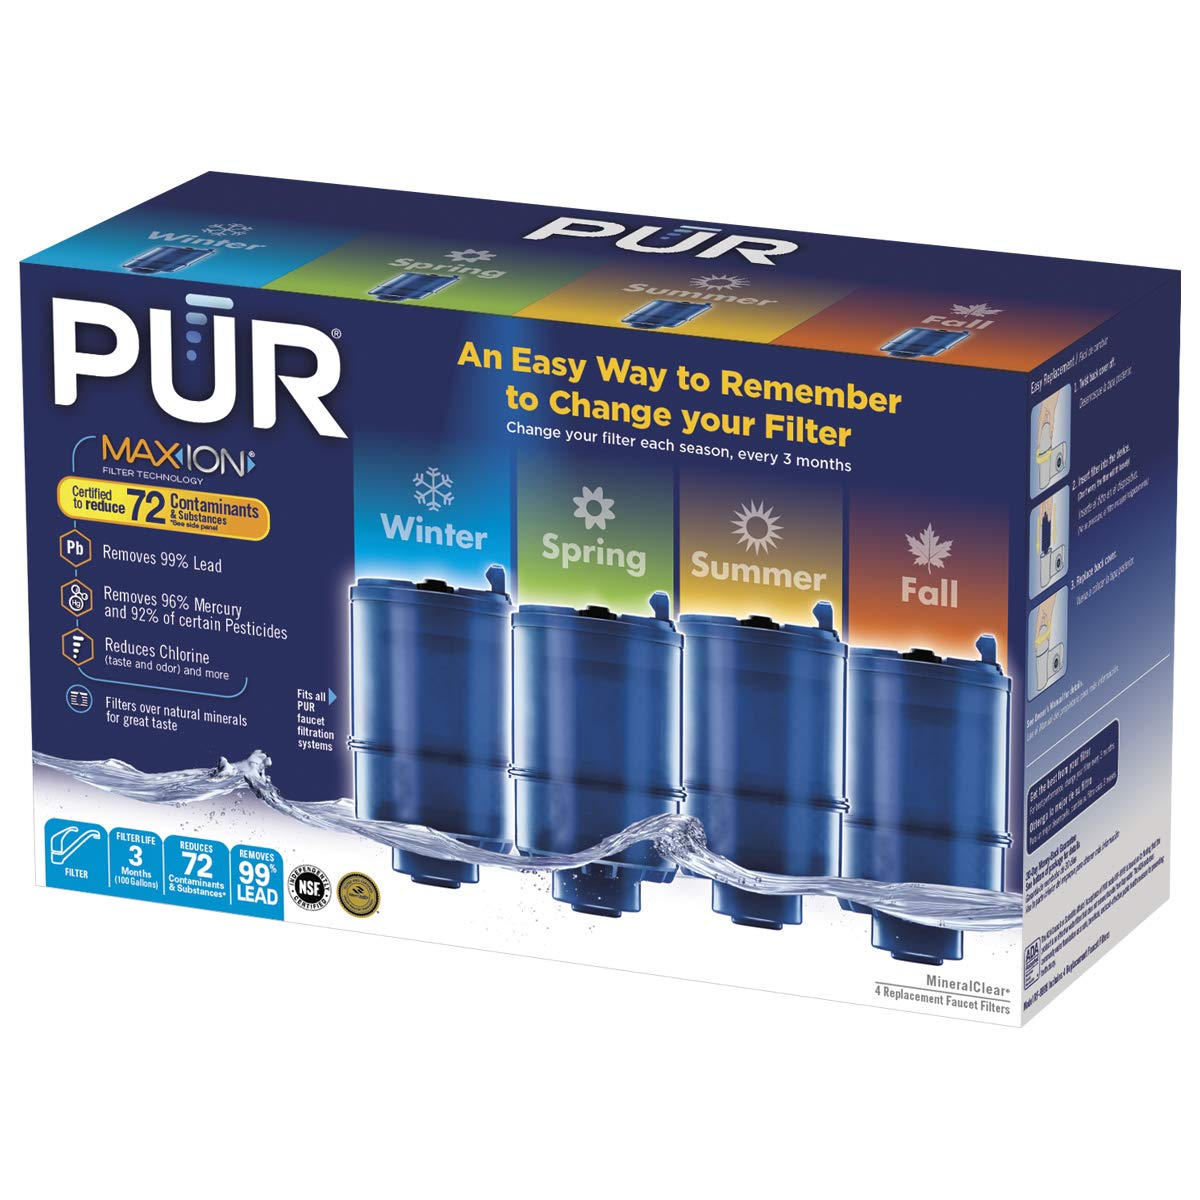 PUR RF99994SP Replacement Filter, 4 Pack, Blue by PUR